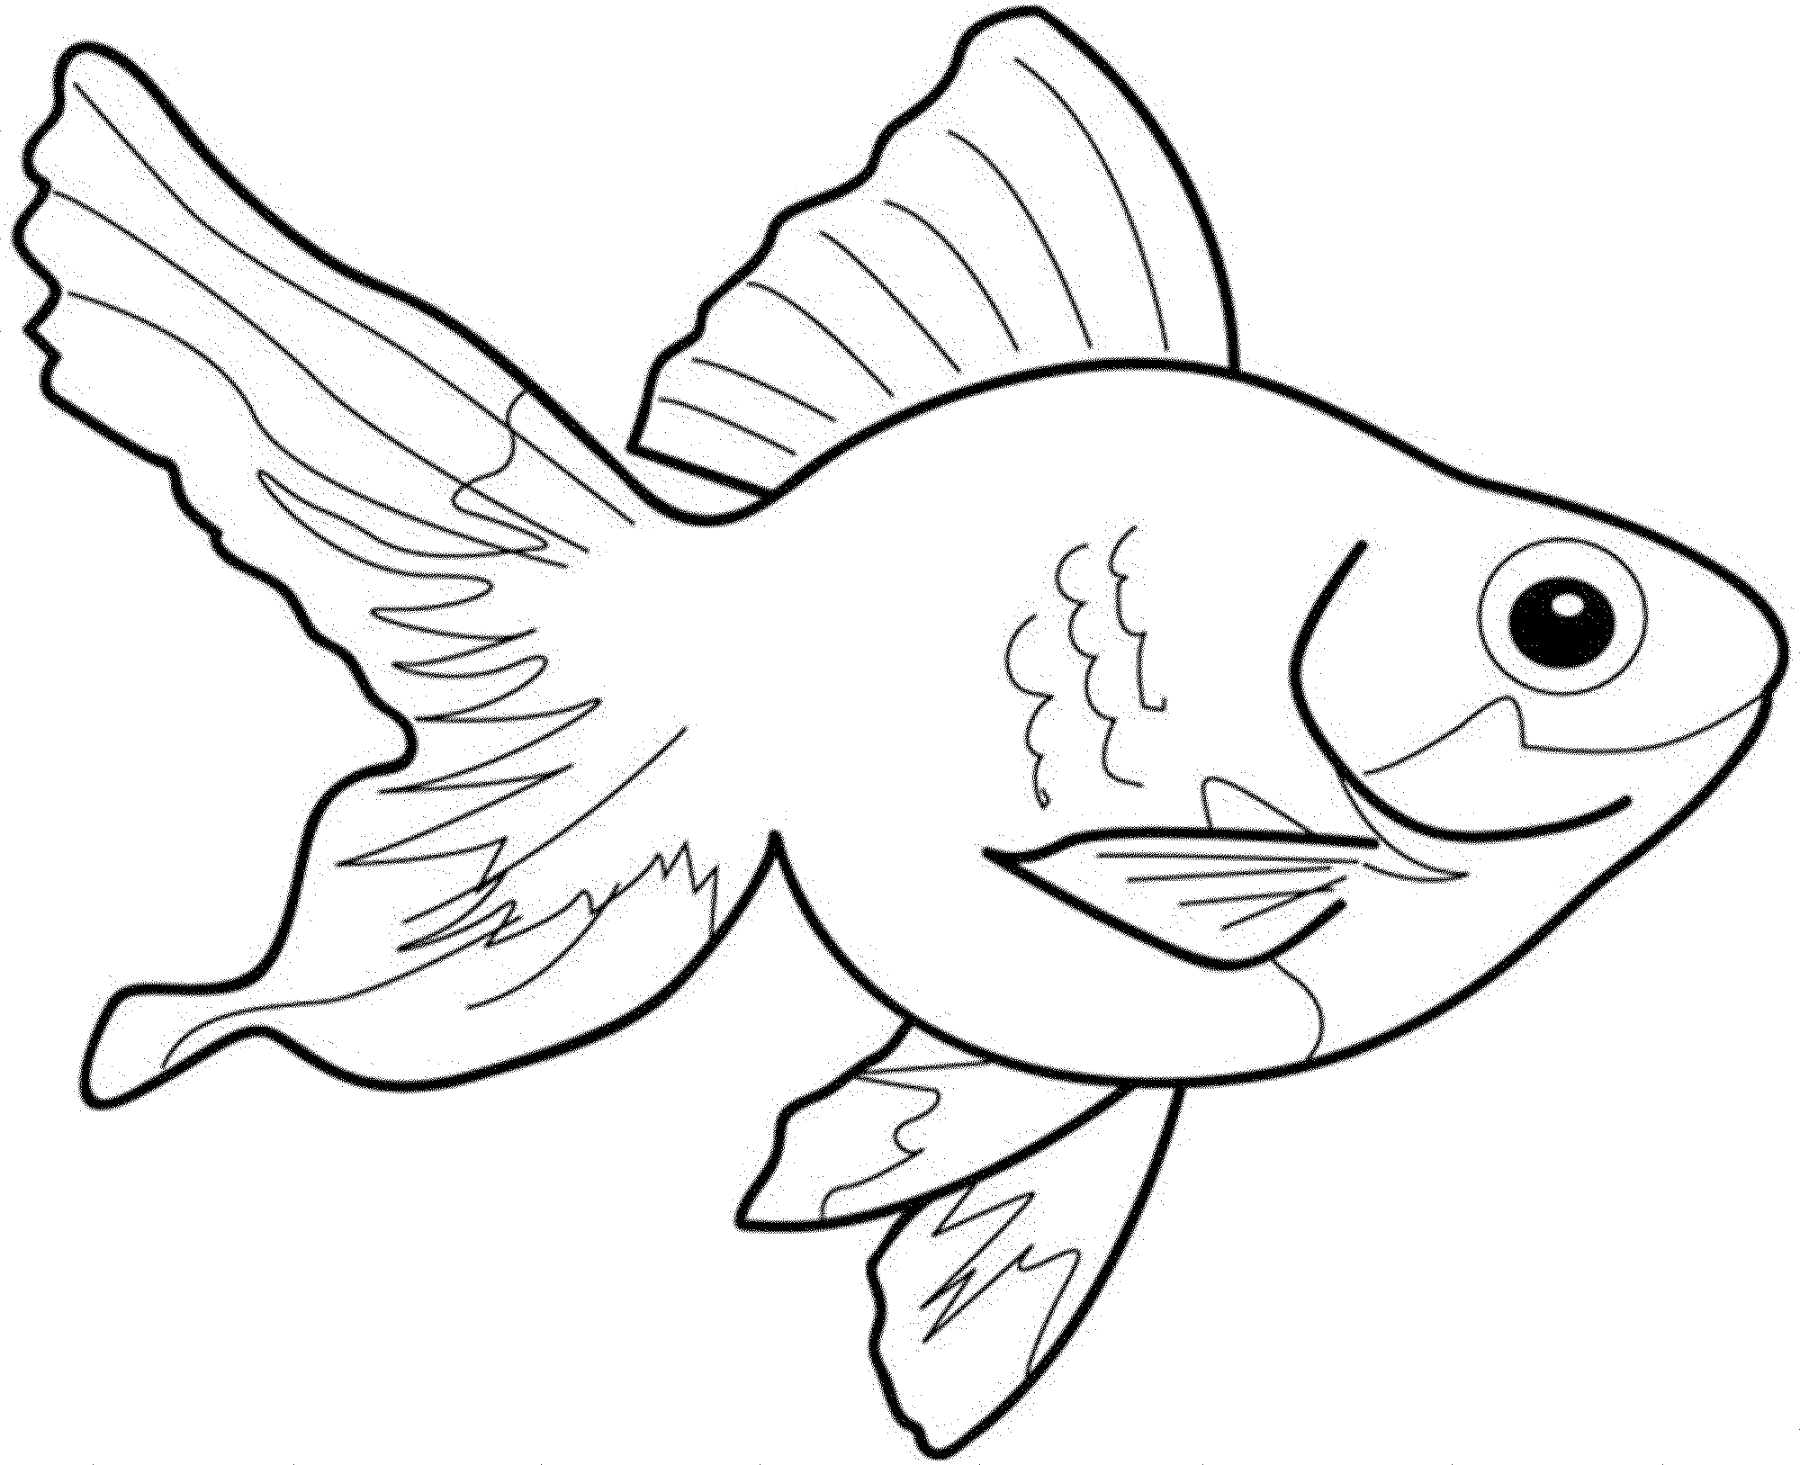 Enjoyable fish coloring pages that helps maintain focus